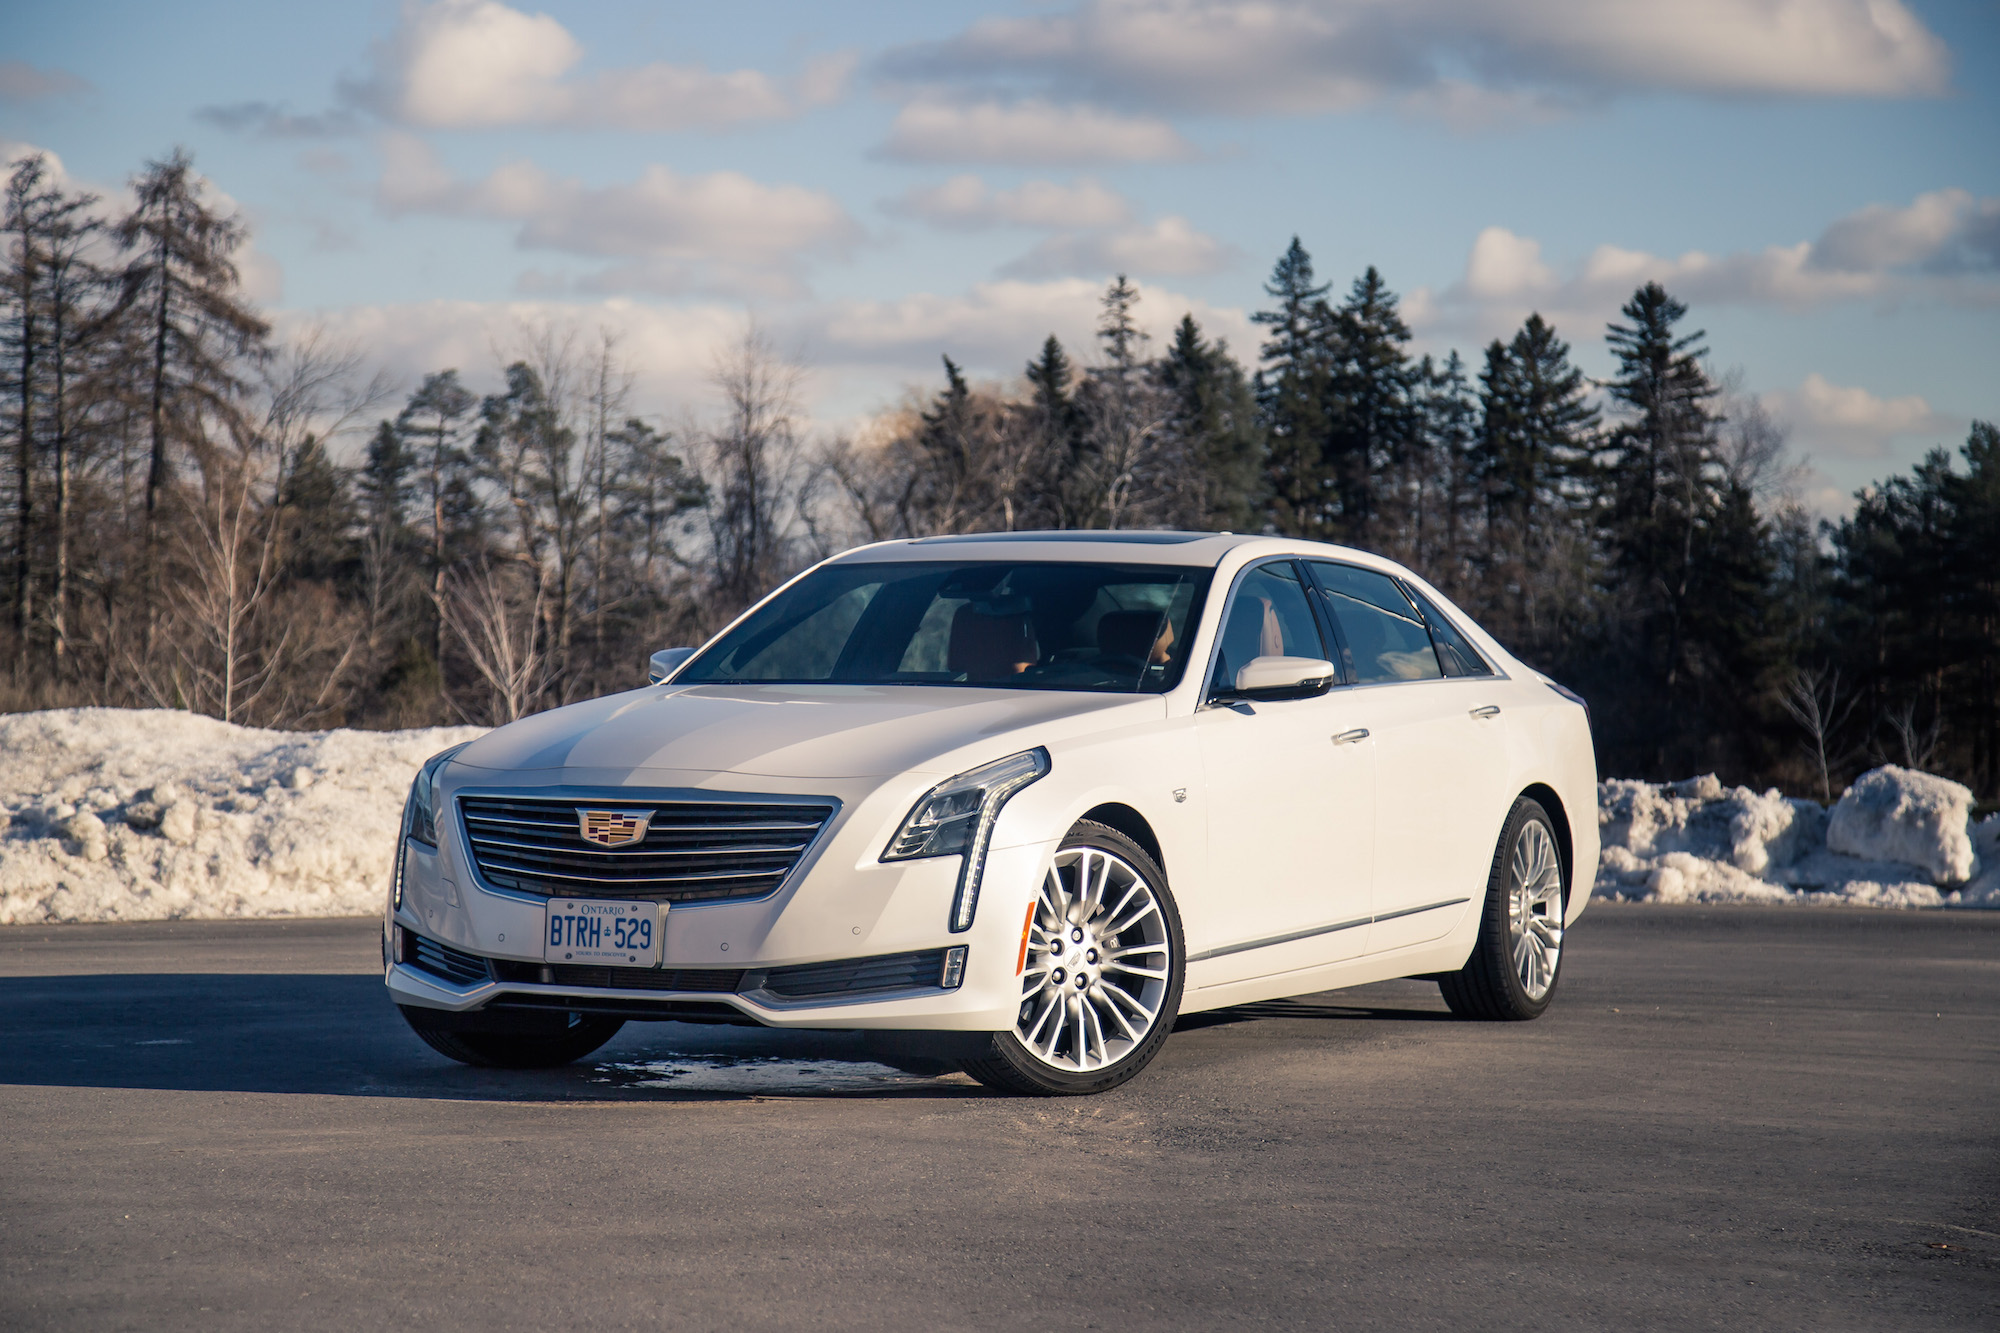 review 2017 cadillac ct6 3 0l twin turbo luxury canadian auto review. Black Bedroom Furniture Sets. Home Design Ideas